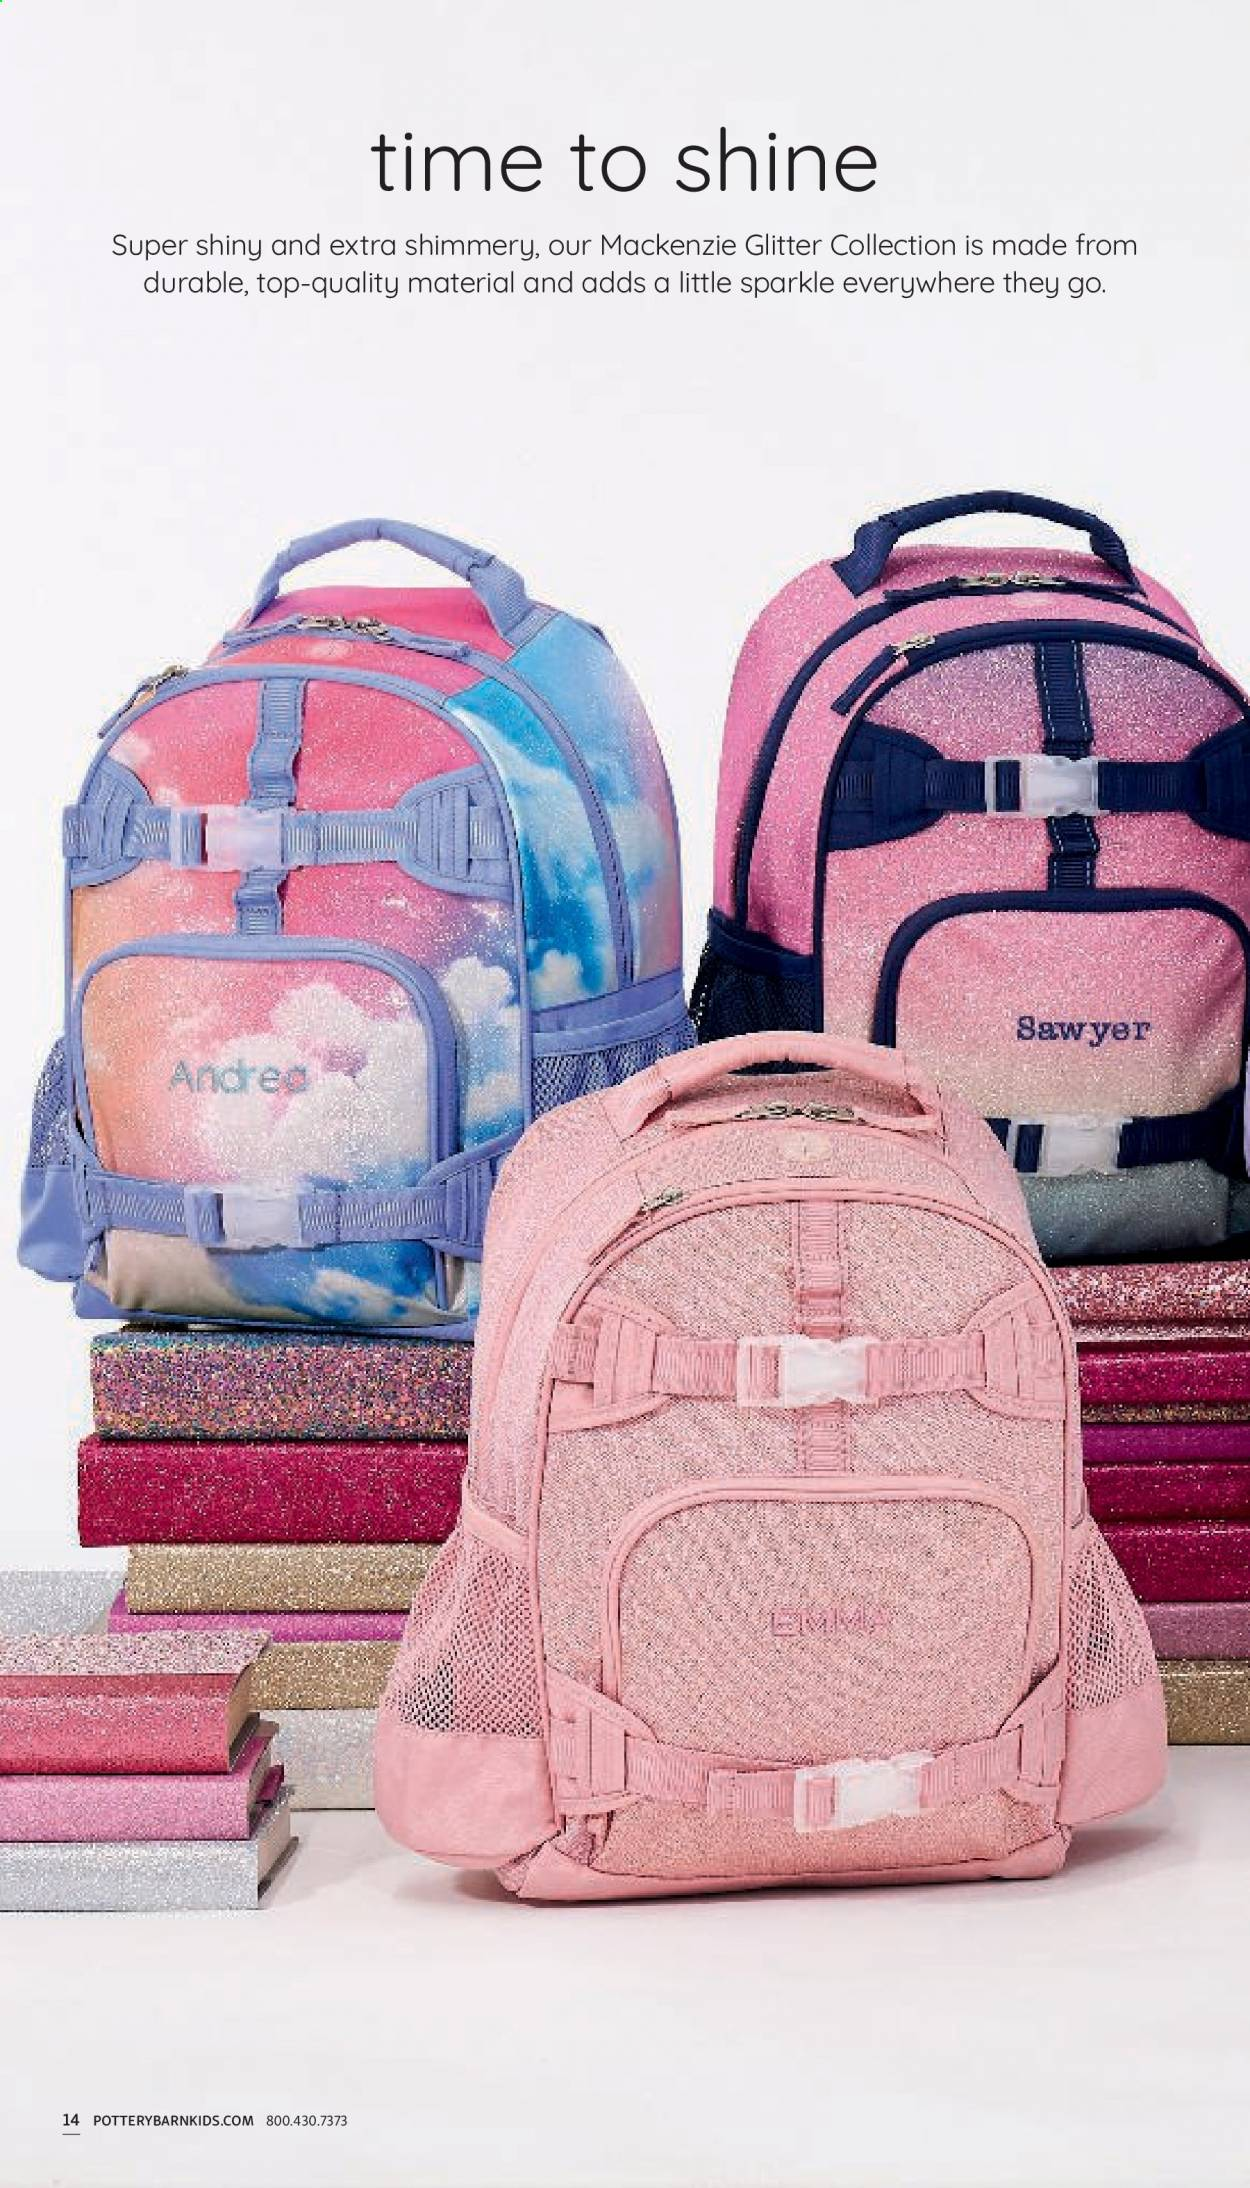 Pottery Barn Ad Kids - Back to School 2021 - Page 14